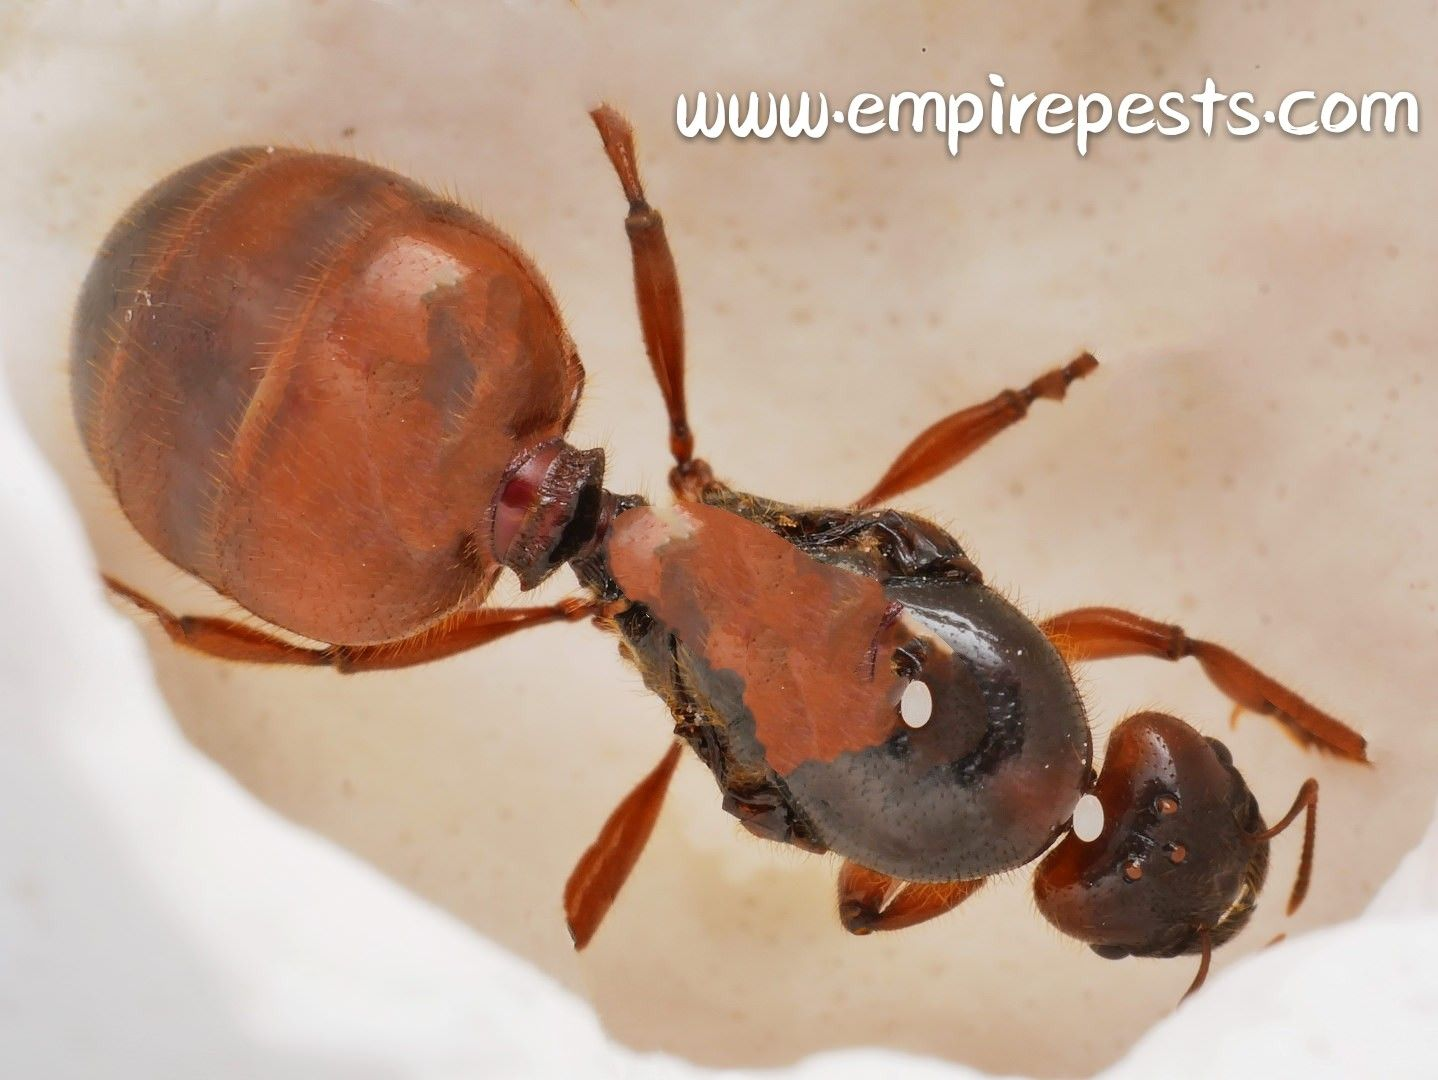 We provide a fast and long term Pest solution. Call Empire